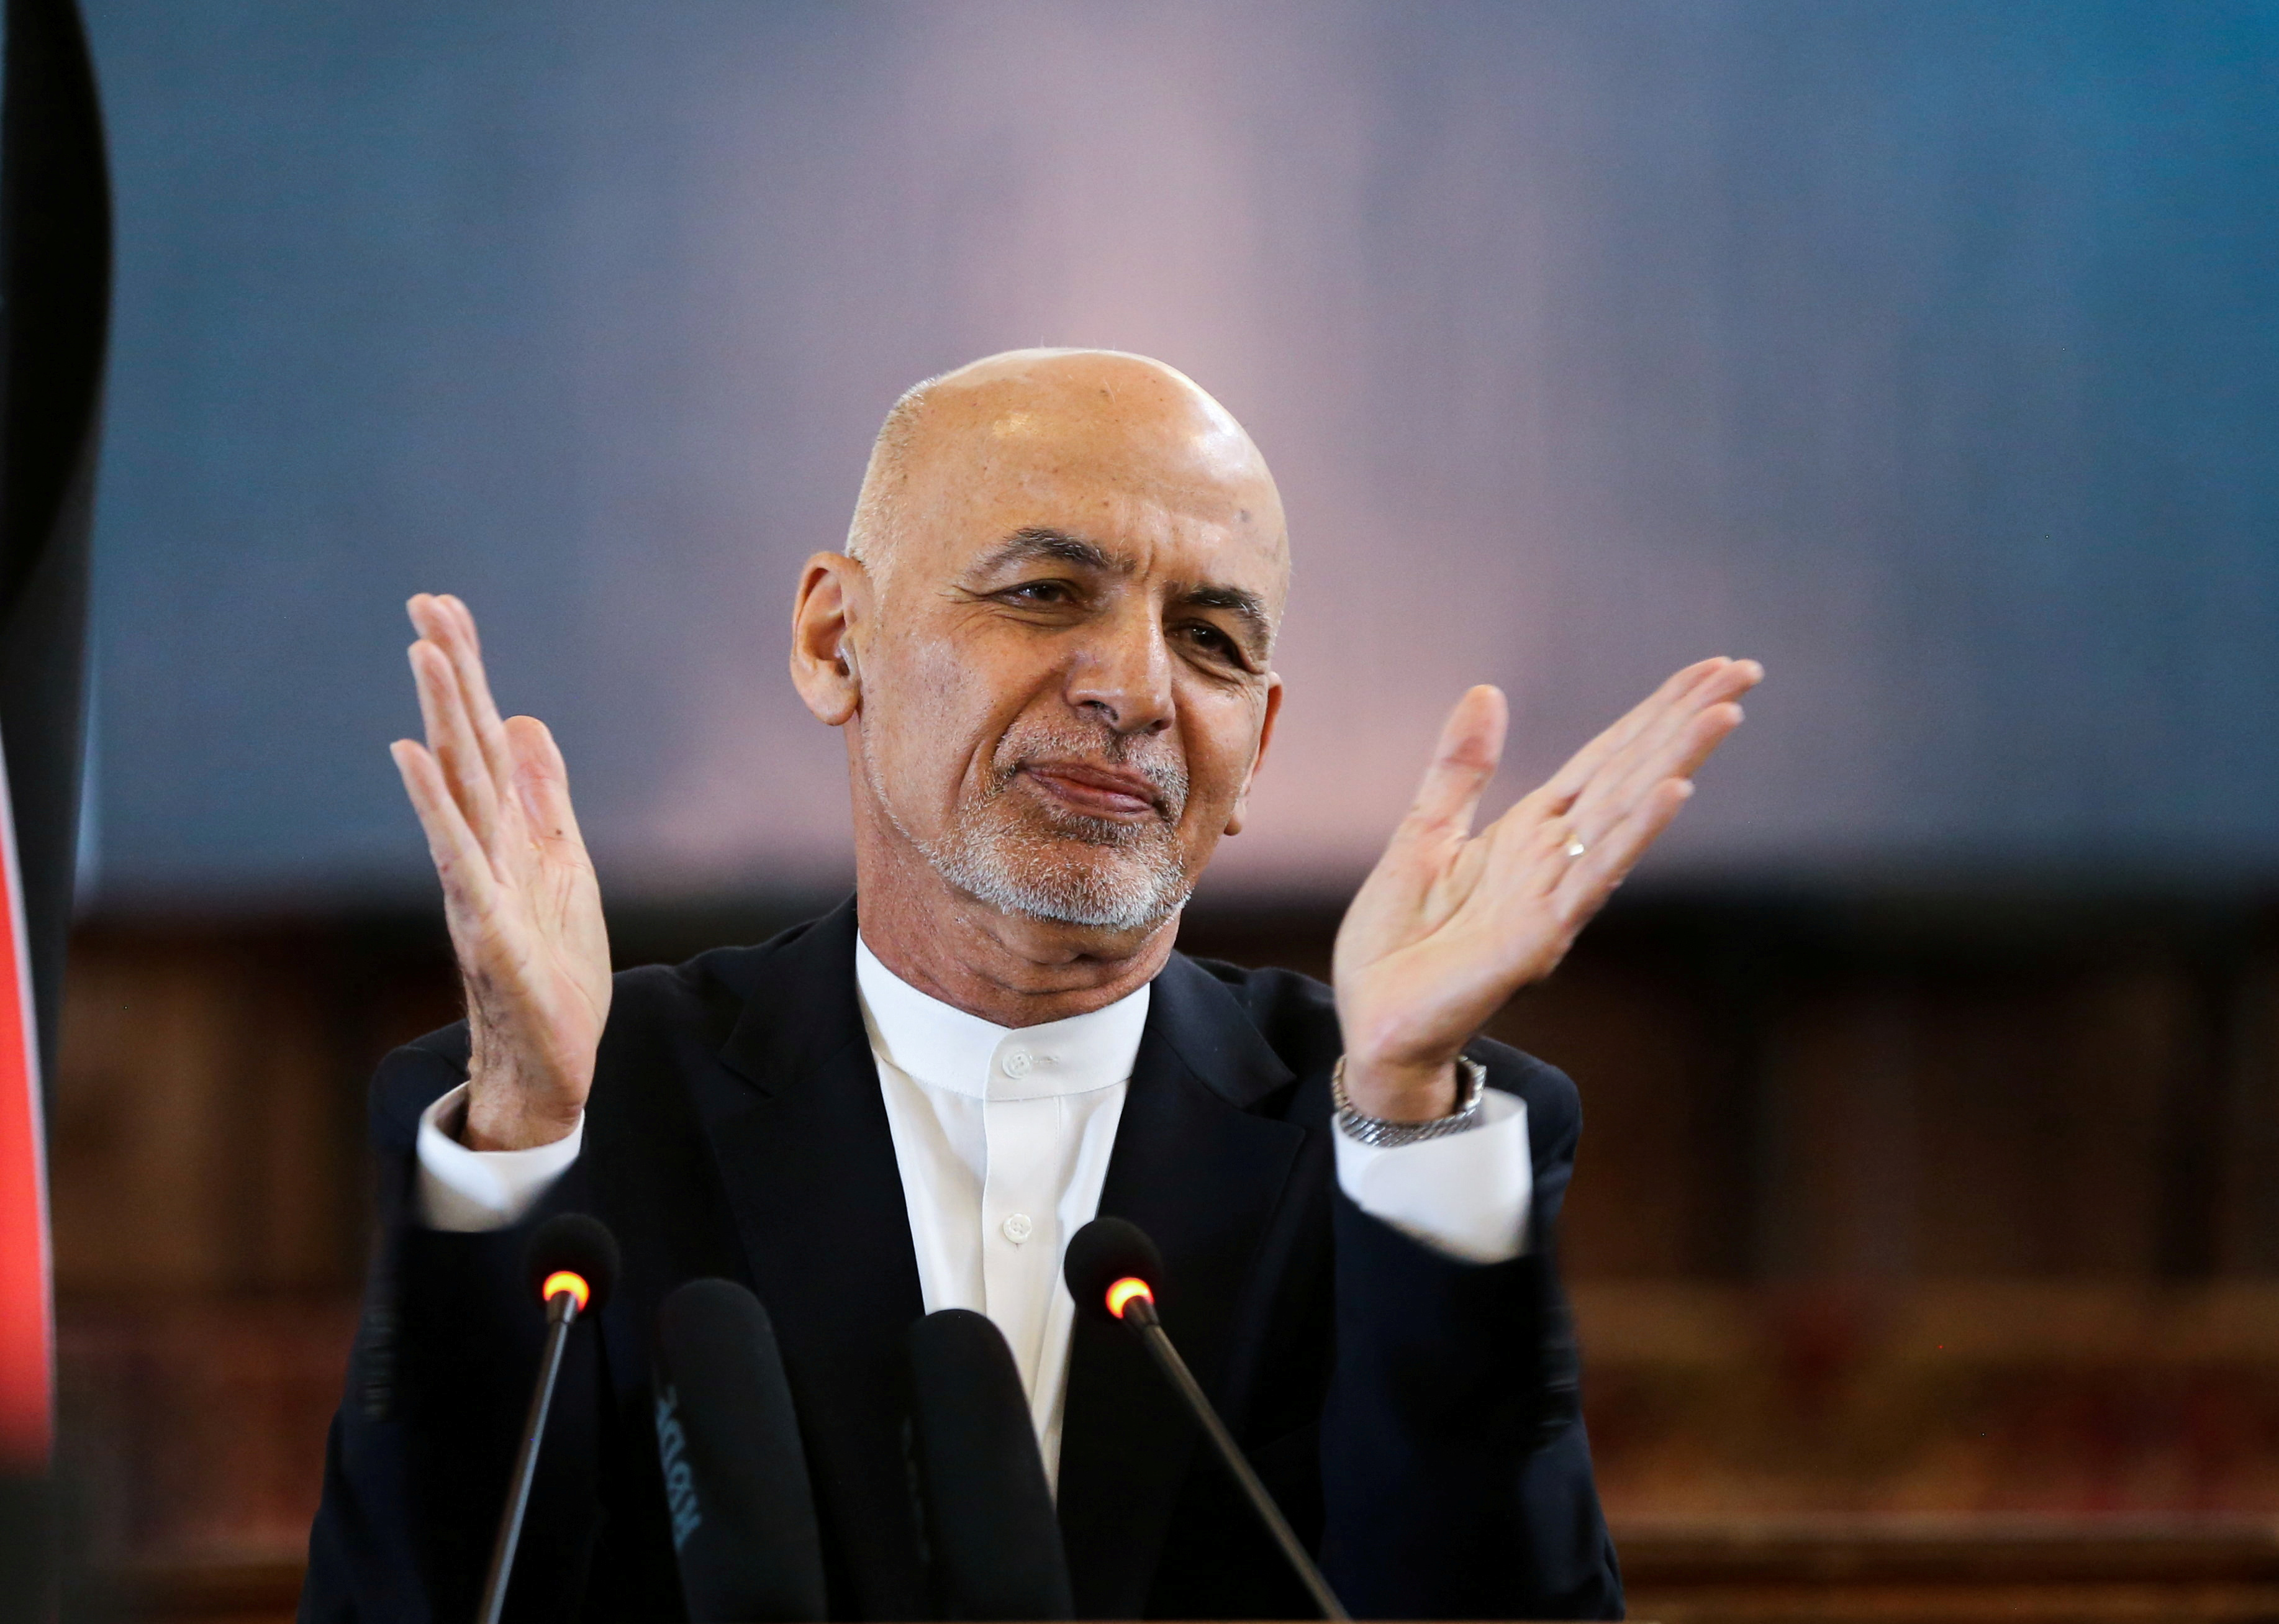 Afghanistan's President Ashraf Ghani gestures during celebrations to mark Afghan New Year (Newroz), in Kabul, Afghanistan March 21, 2021. REUTERS/Omar Sobhani/File Photo